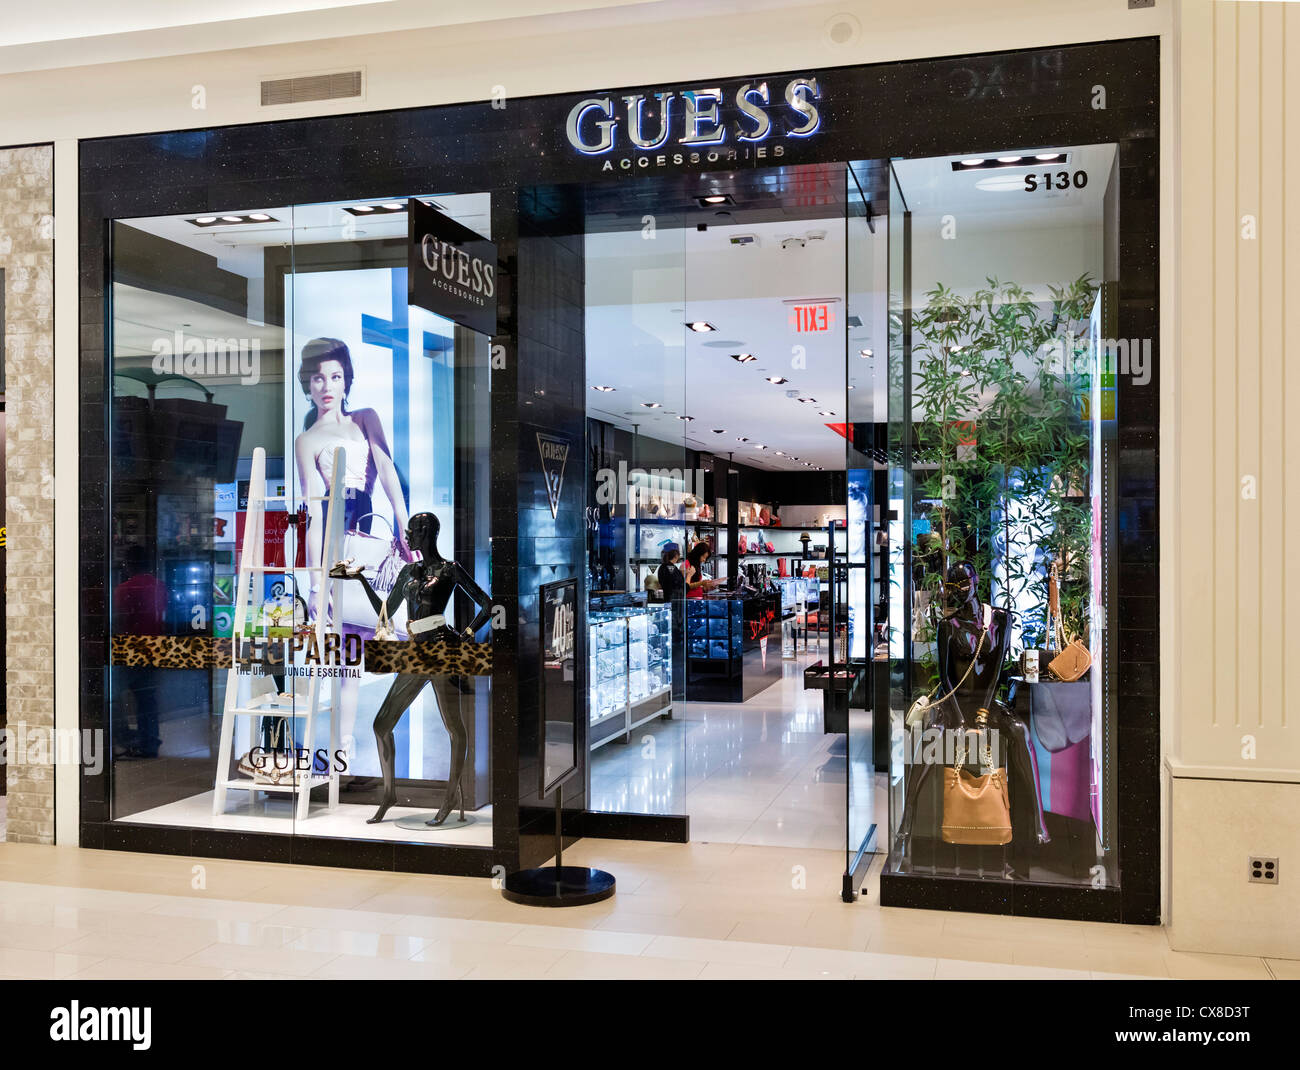 Guess Accessories store in the Mall of America, Bloomington, Minneapolis, Minnesota, USA - Stock Image